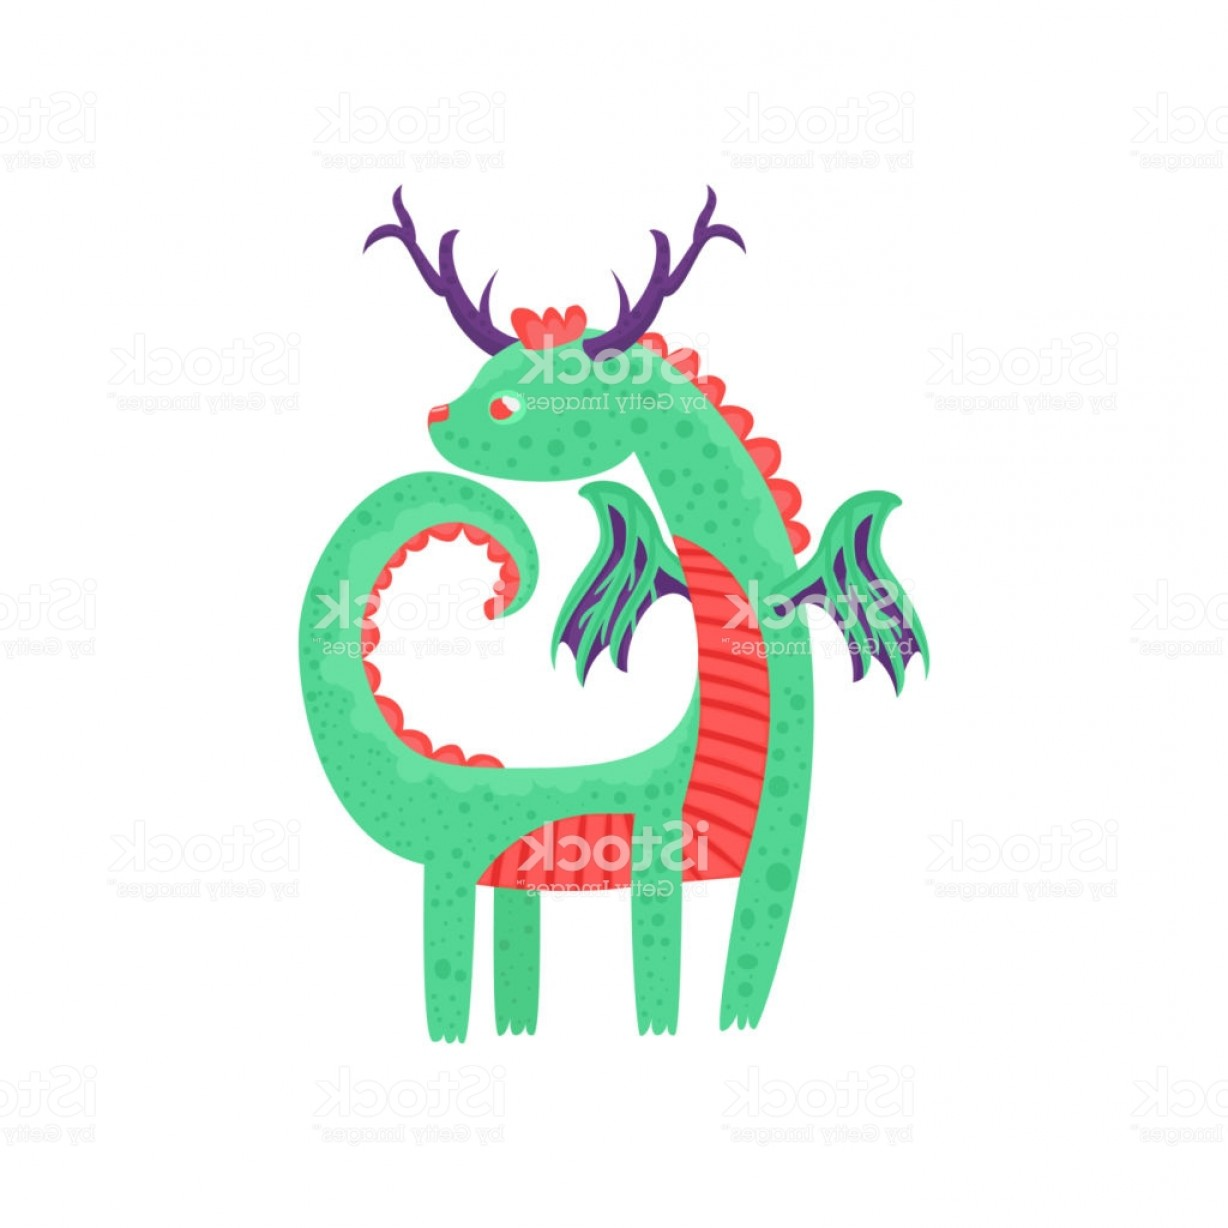 Baby Dragon Silhouette Vector: Cute Horned Baby Dragon Character Mythical Animal Fantasy Reptile Vector Illustration Gm